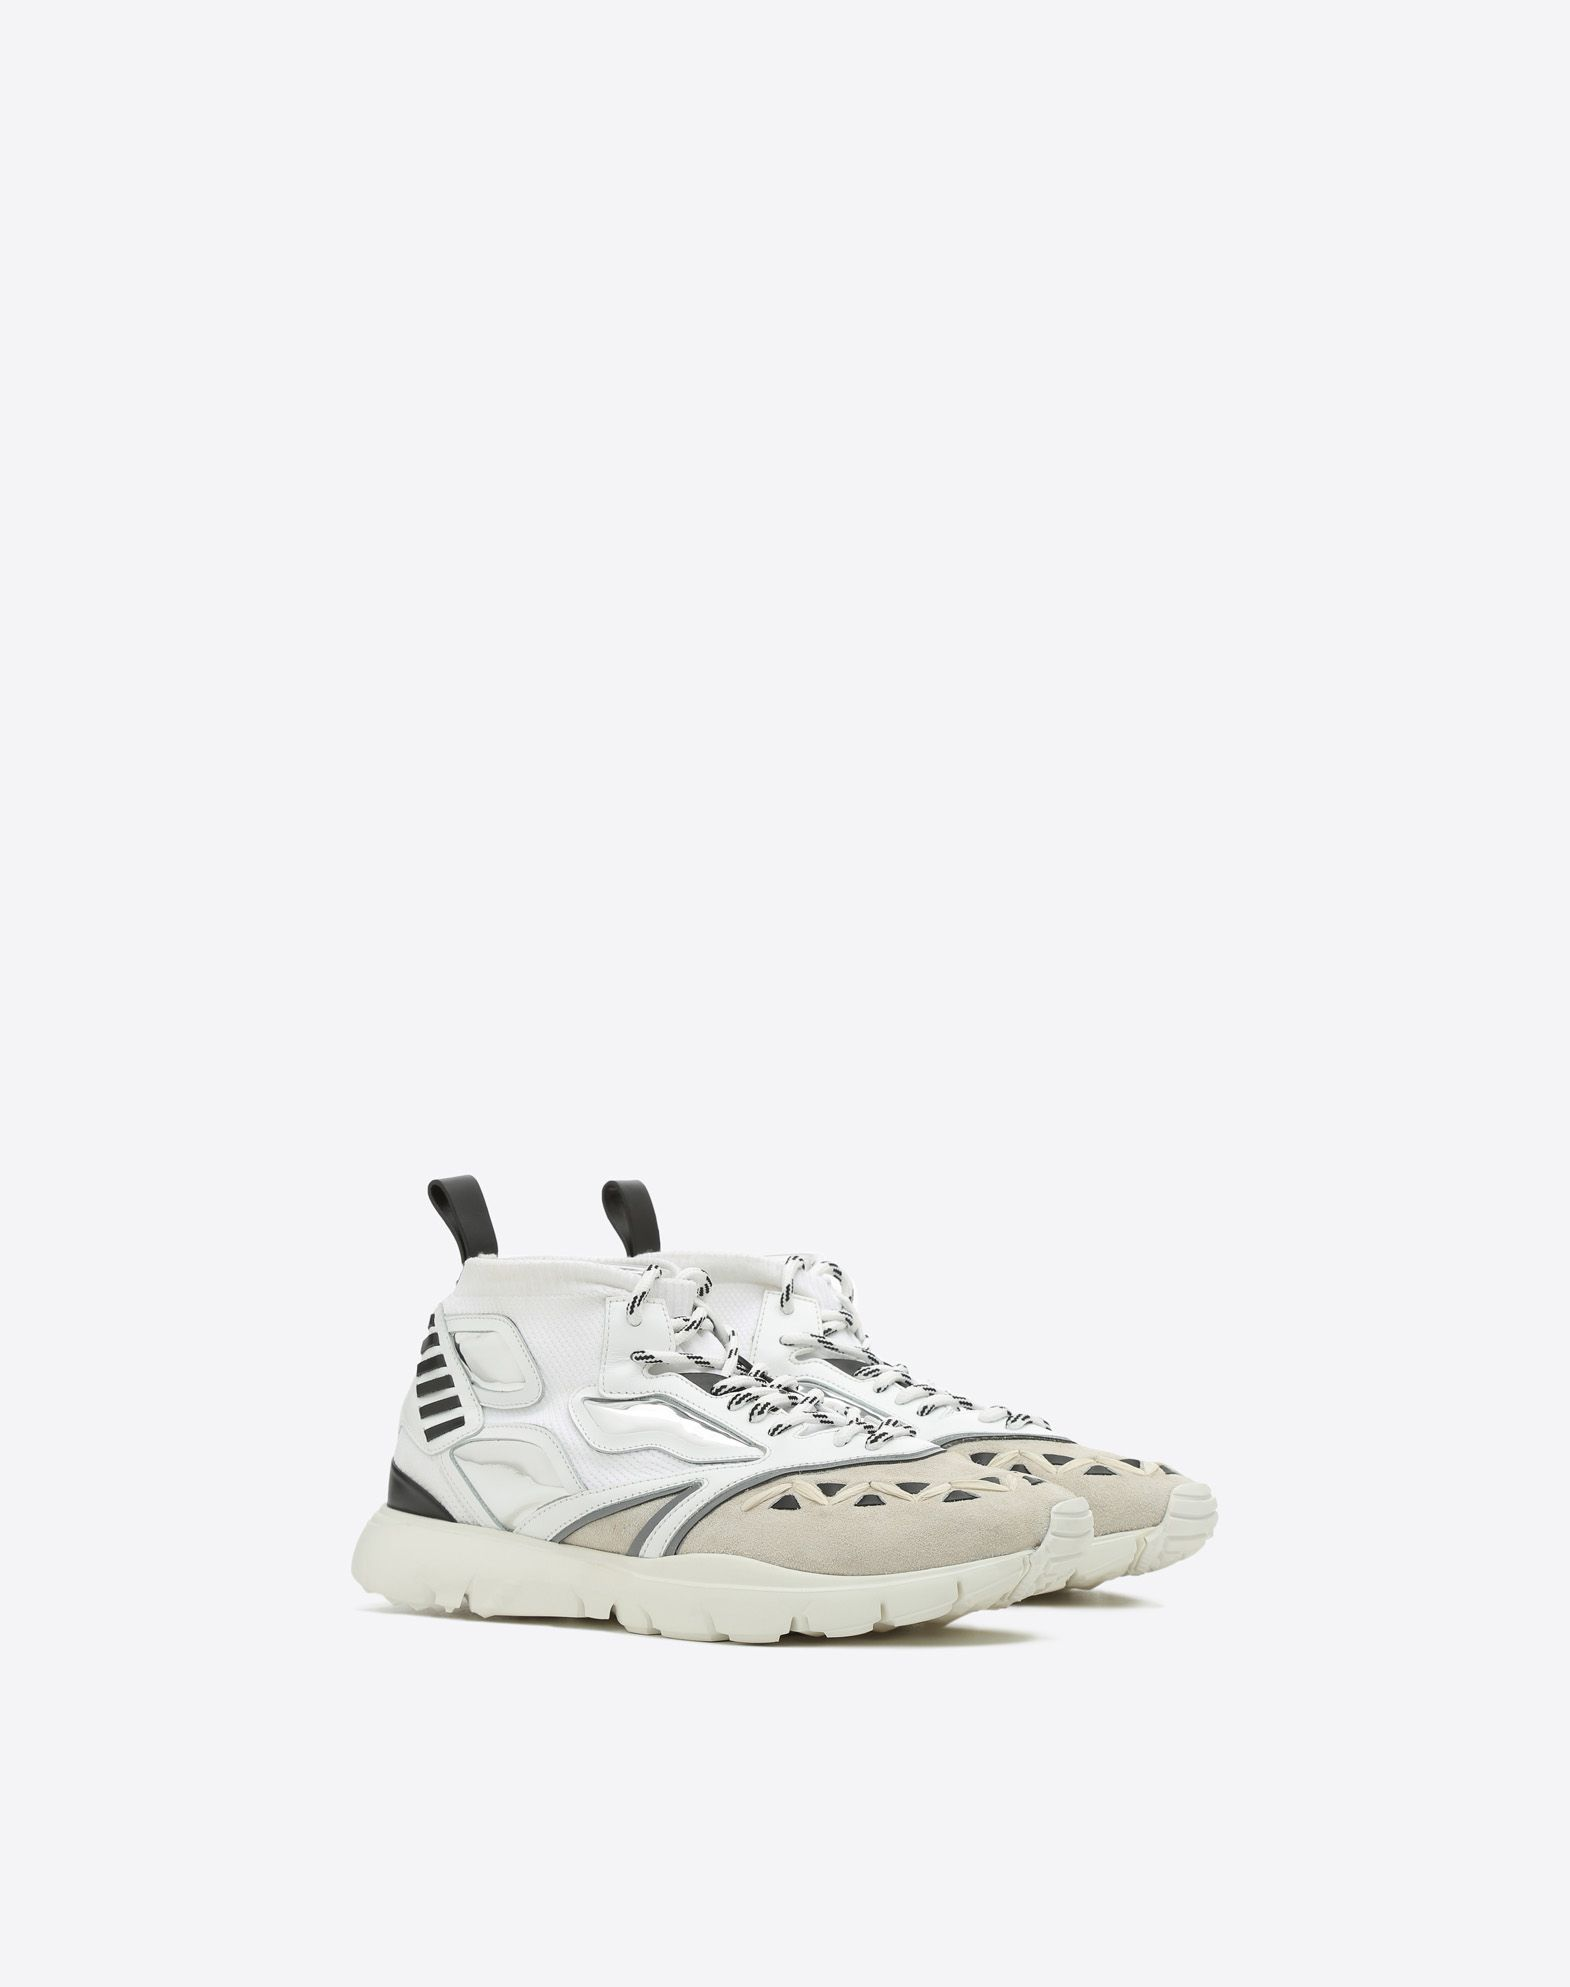 Valentino Heroes sneakers sale high quality find great cheap price cheap sale 2014 for sale buy authentic online 1fwYVvZhf6